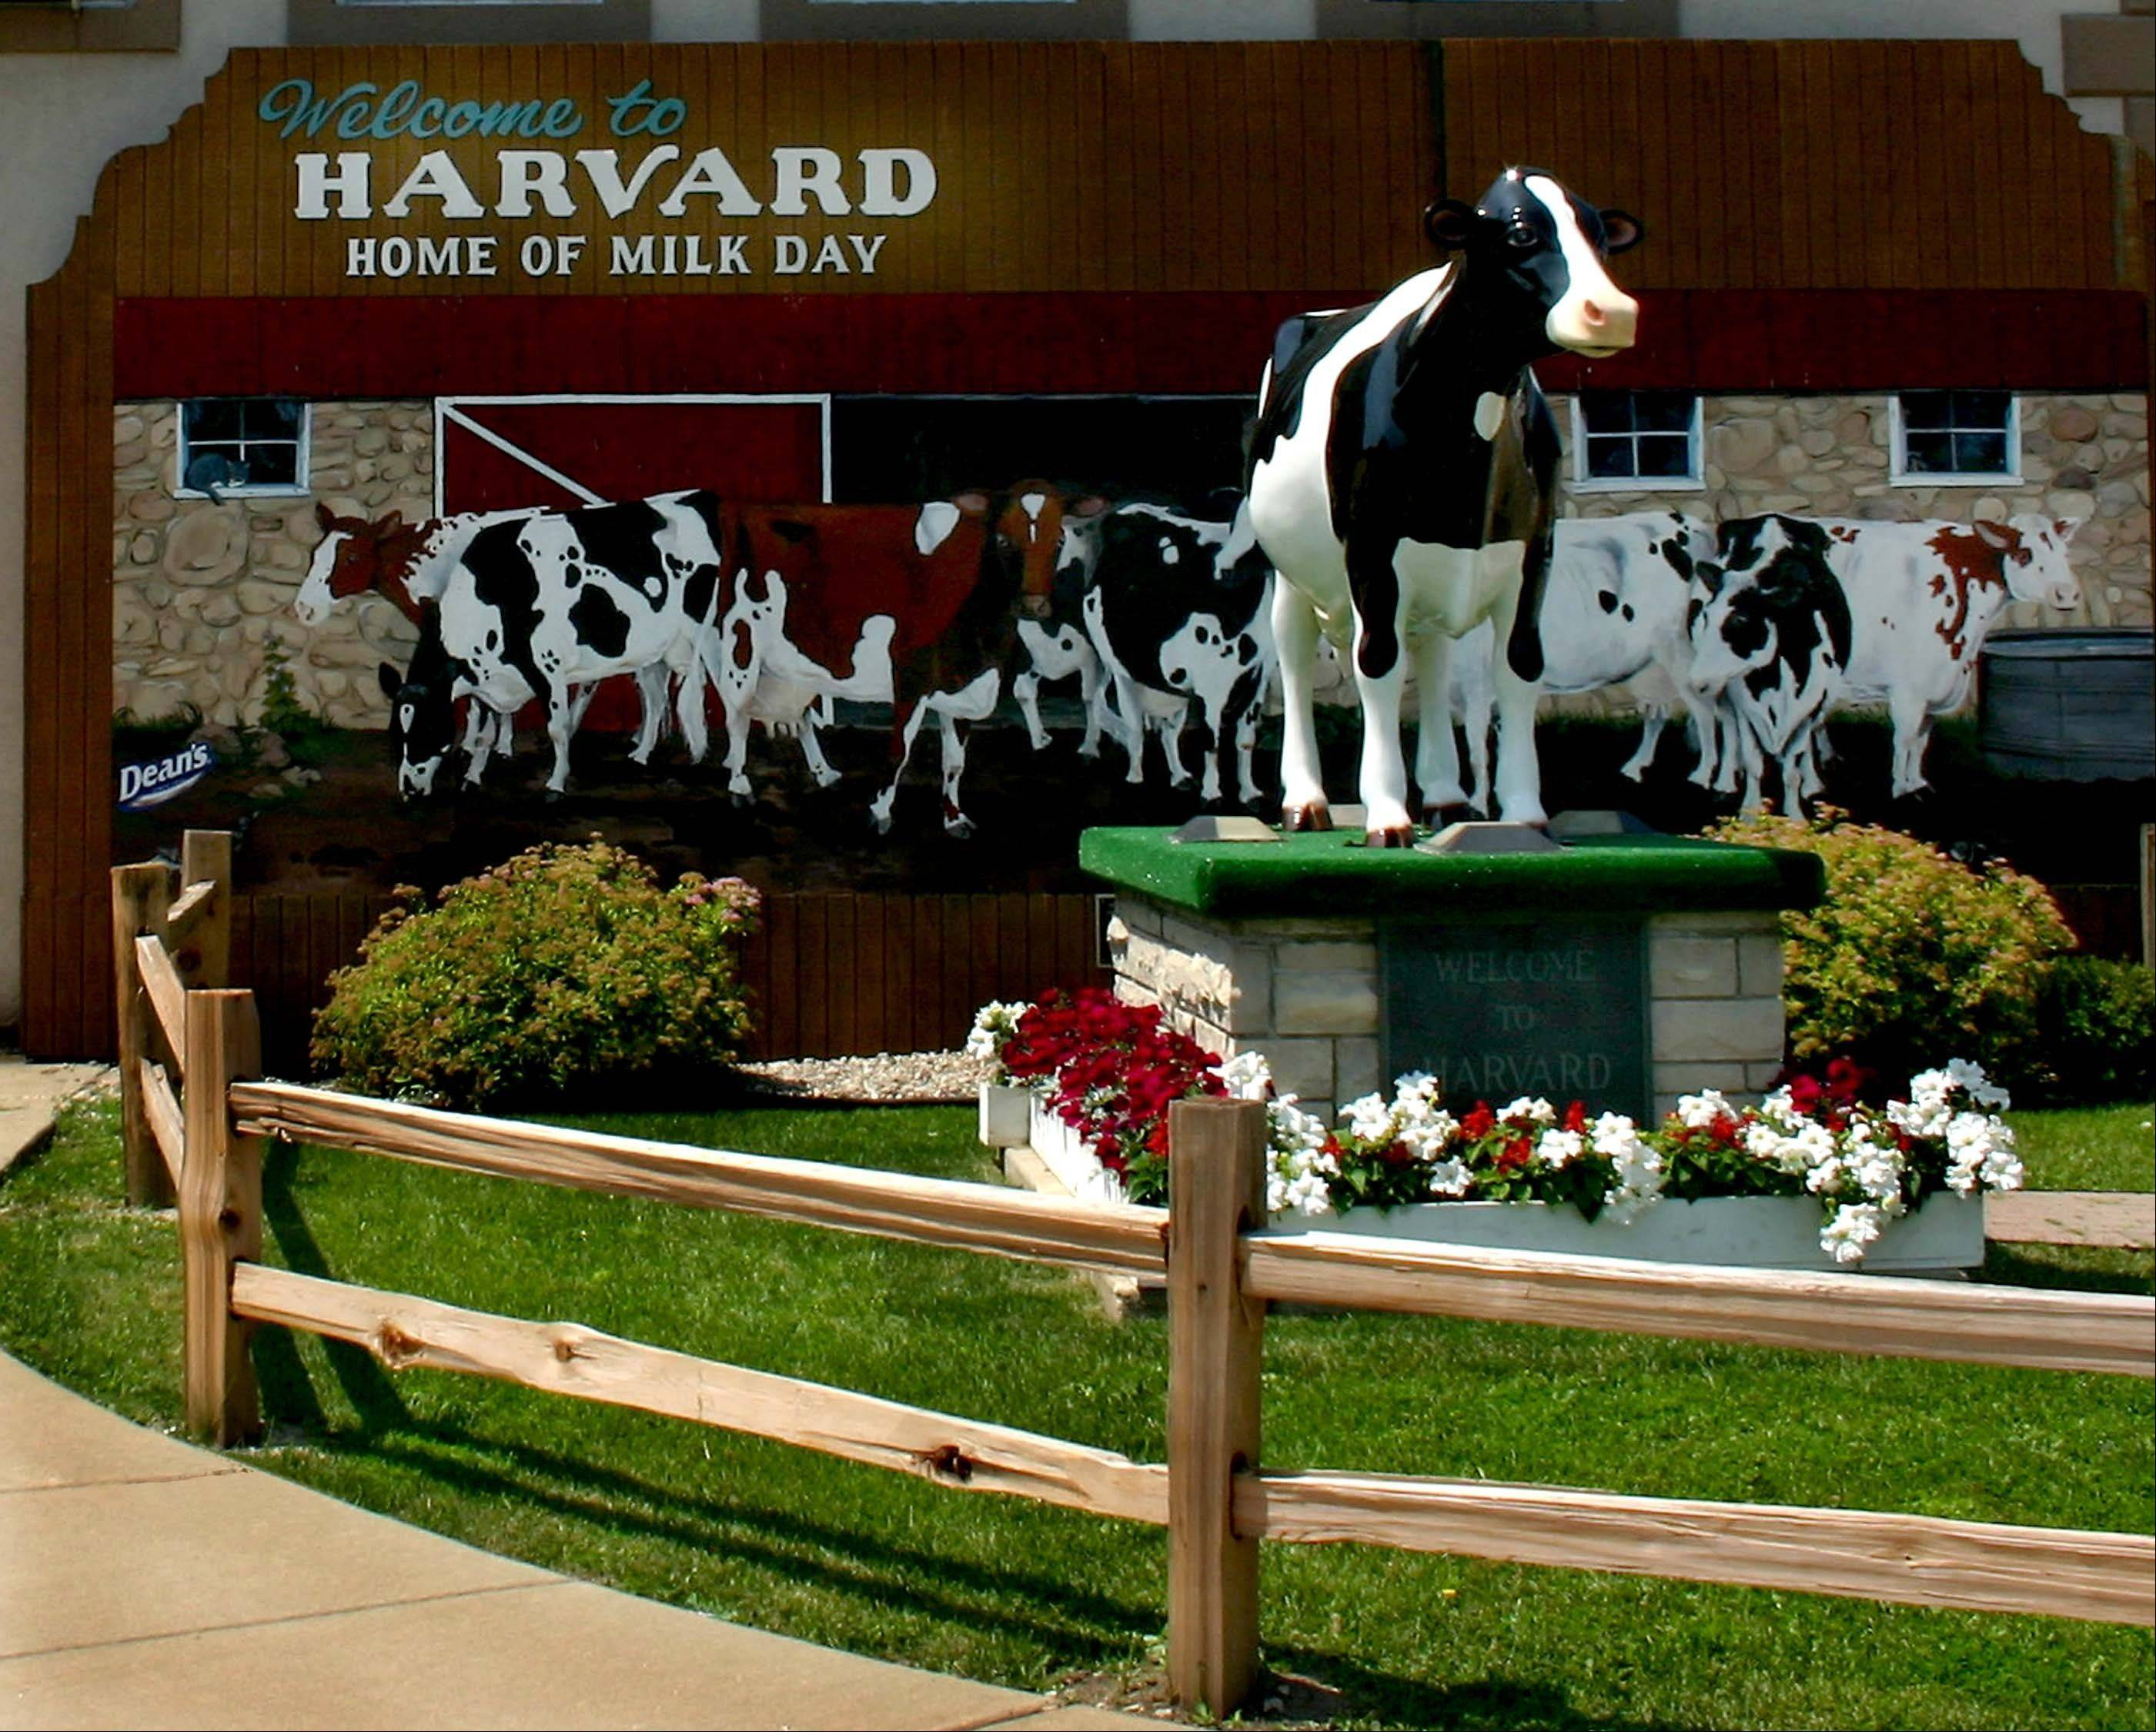 Daily Herald file photoHead to Harvard for the town's 72nd annual Harvard Milk Days festival, running Friday, May 31, through Sunday, June 2.